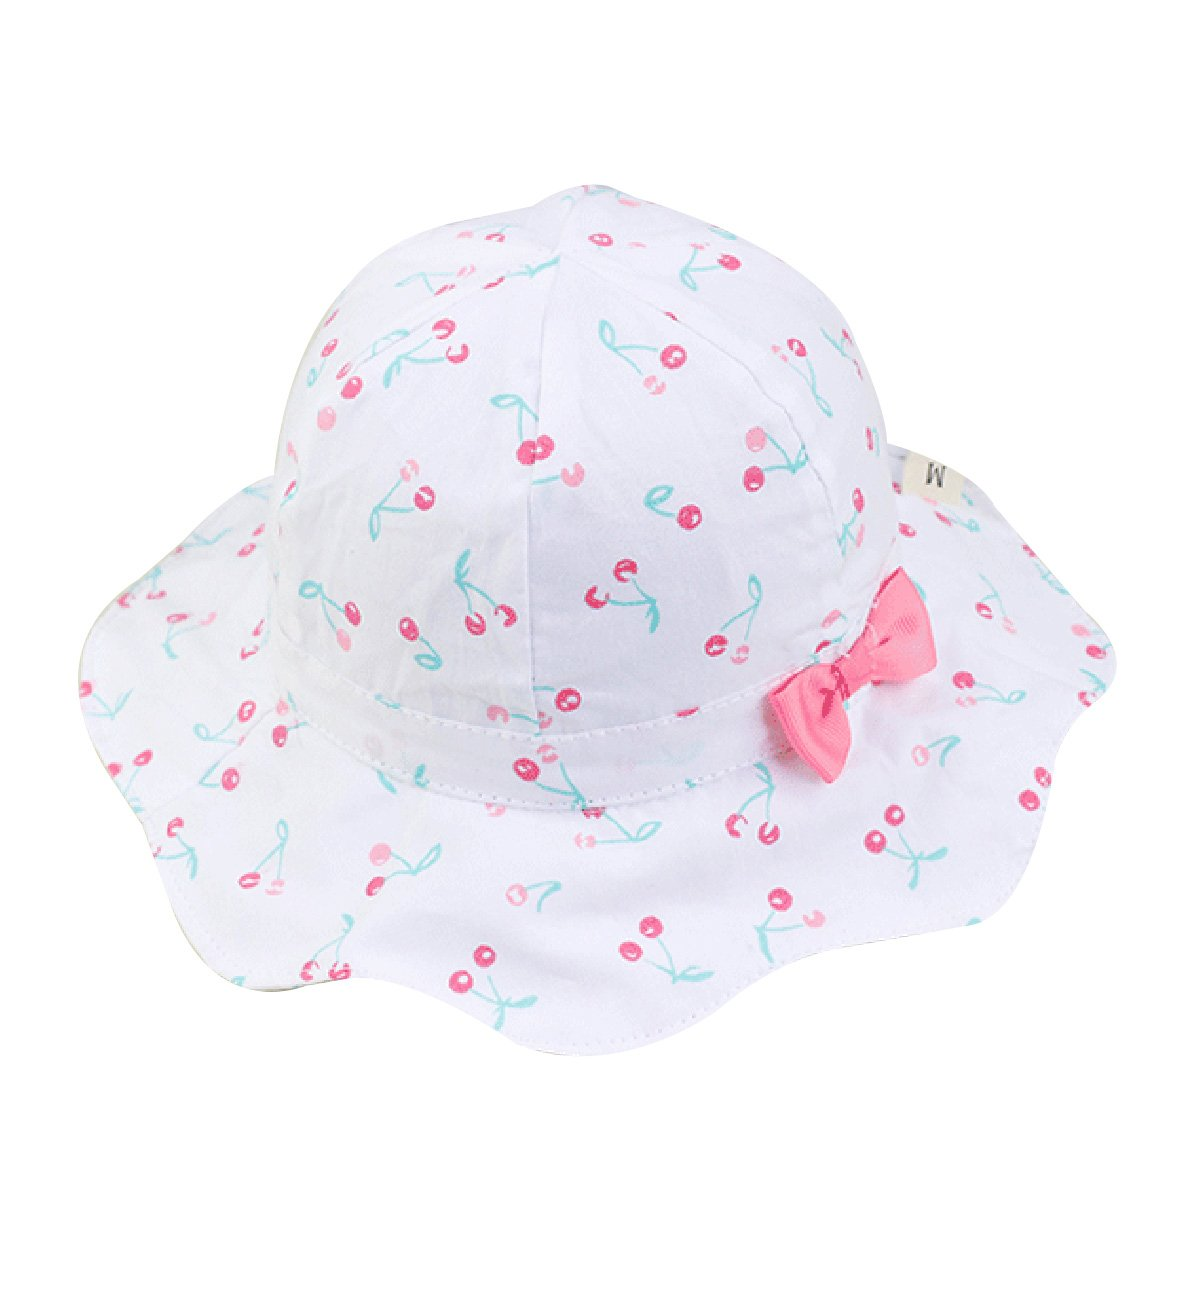 Laipelar Adjustable Flower Print Cotton Hat Fashion Floral Baseball Cap Sunbonnet